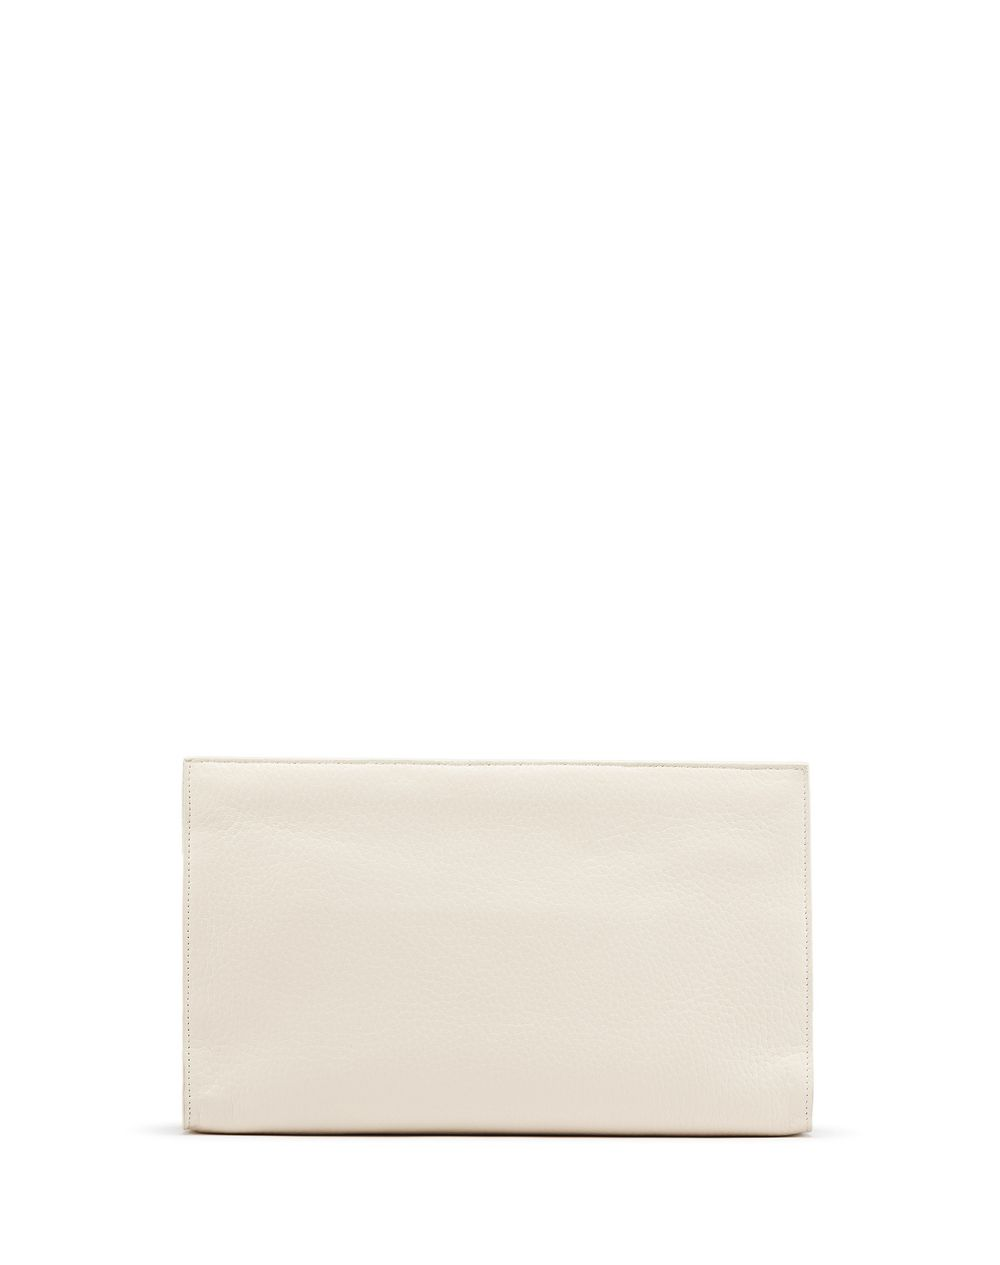 "CREAM ""RÉGLISSE"" CLUTCH - Lanvin"